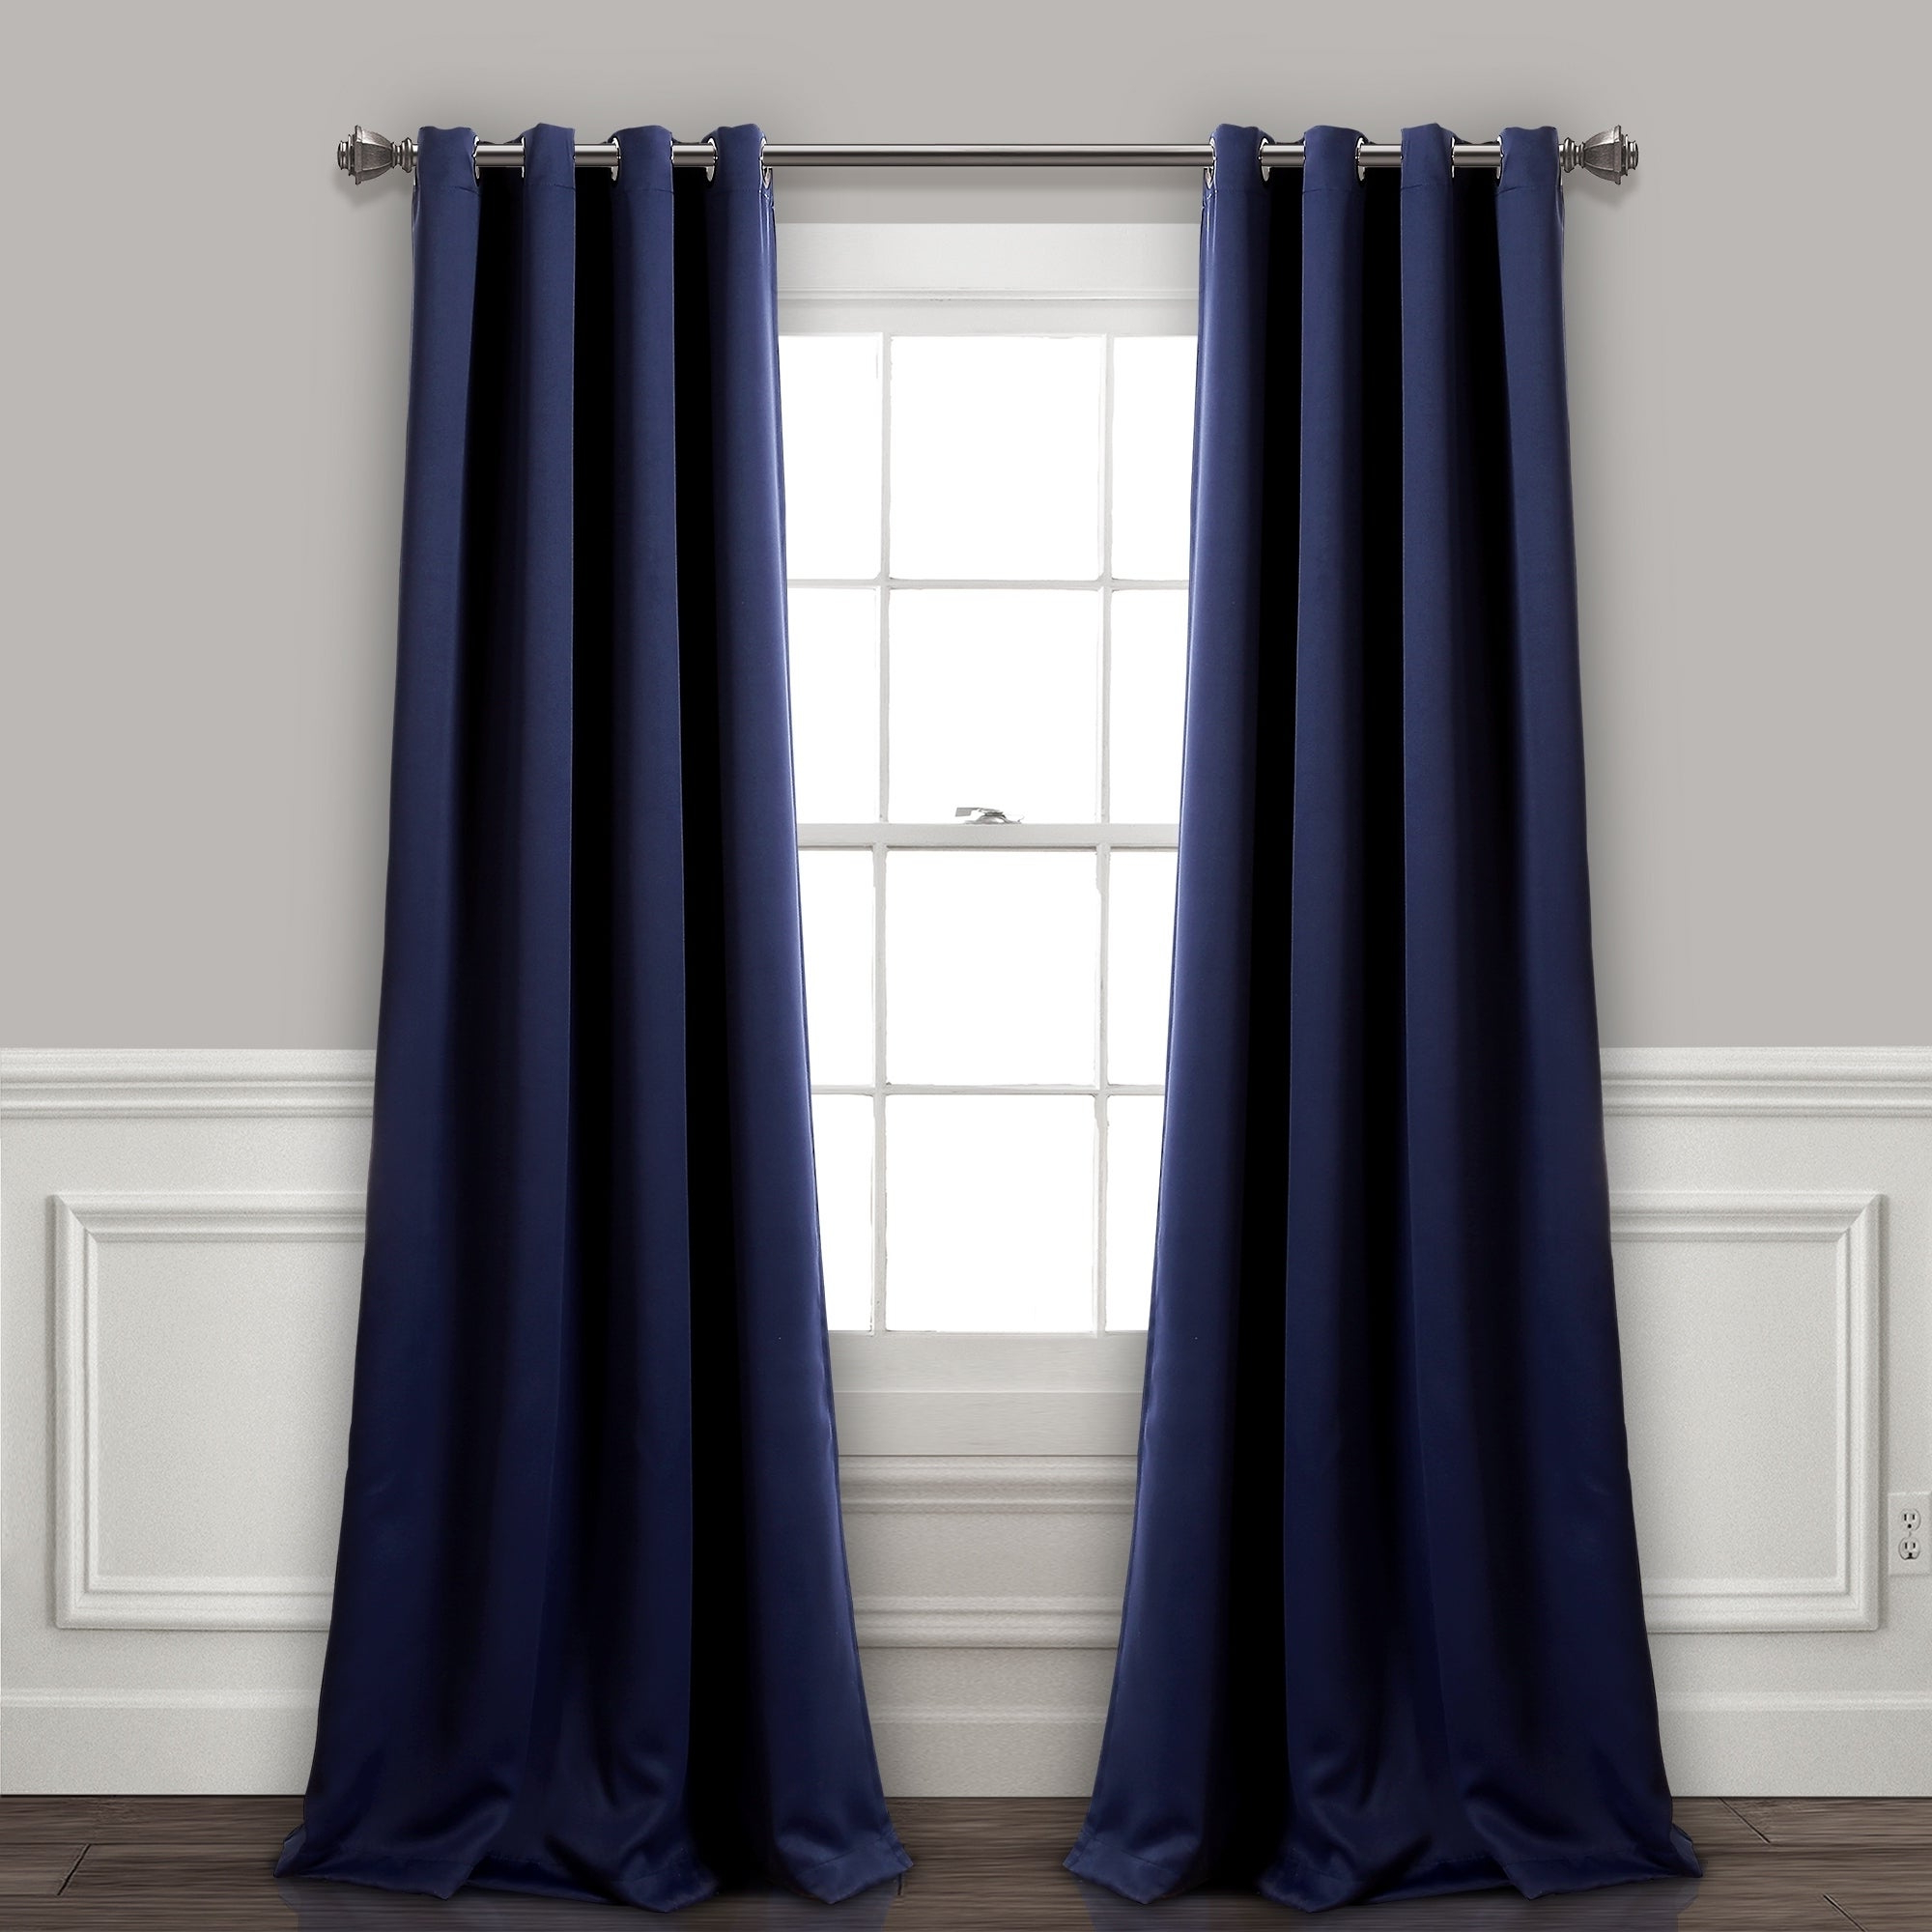 Lush Decor Insulated Grommet Blackout Curtain Panel Pair In Widely Used Insulated Grommet Blackout Curtain Panel Pairs (View 3 of 20)